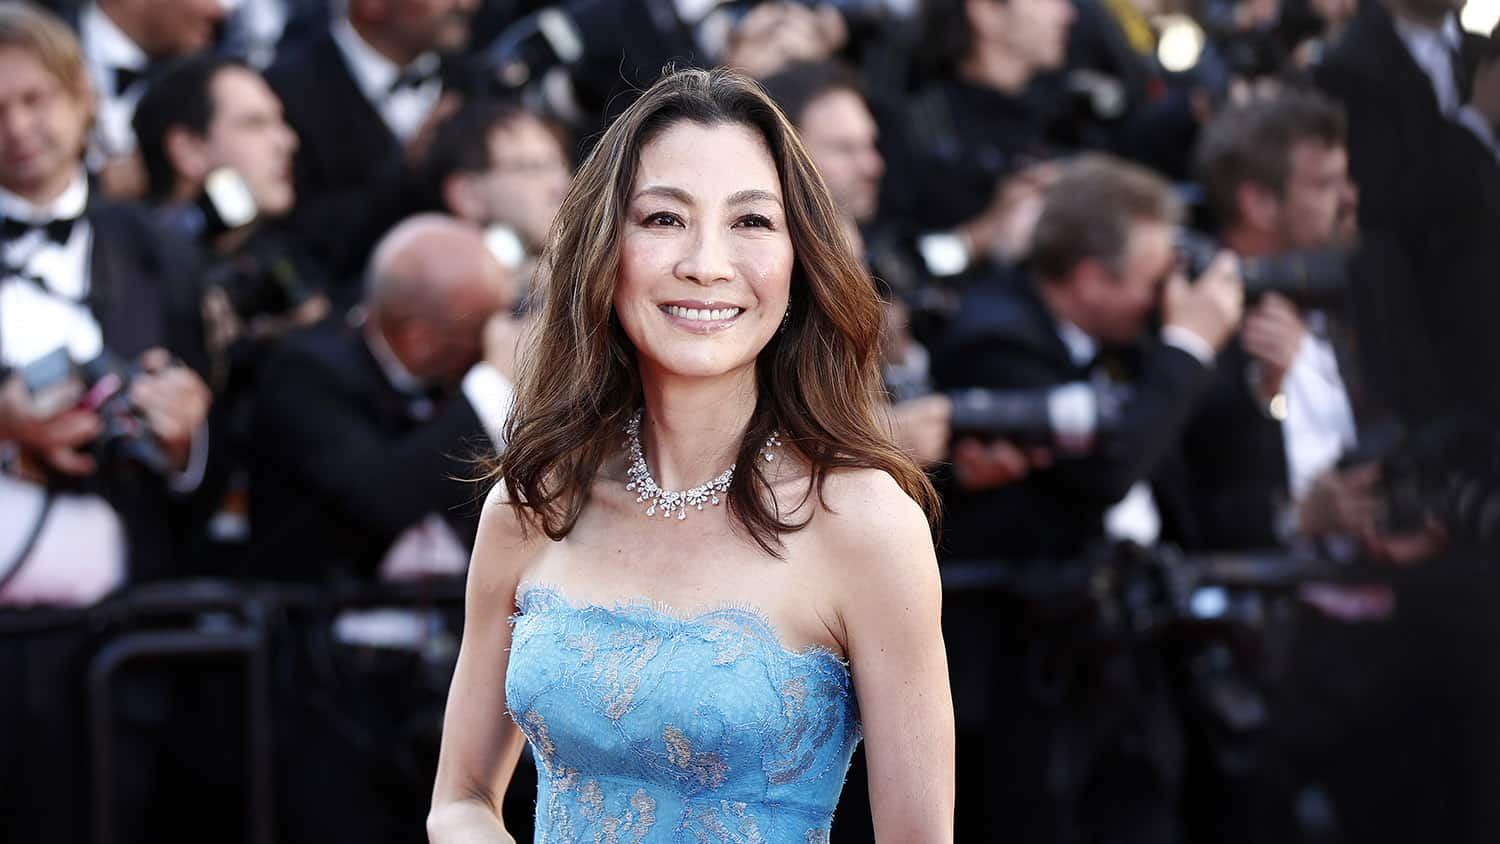 Michelle Yeoh Delivers a Crazy Powerful Performance in the New Film, Crazy Rich Asians | Sixty and Me